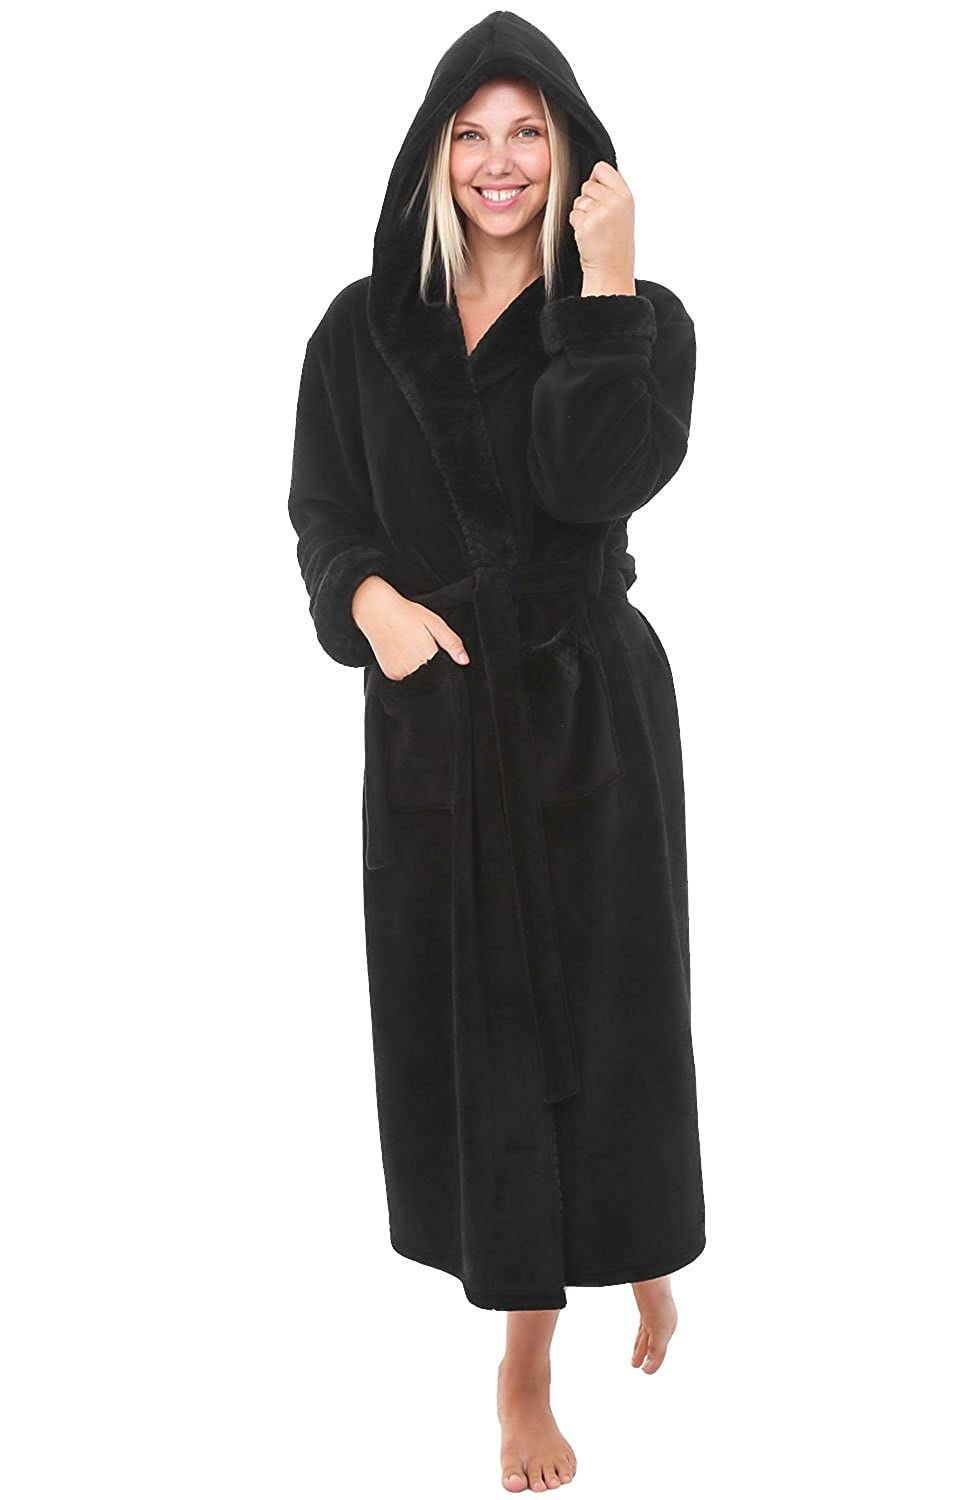 Black With Jacquard Del Rossa Women's Fleece Robe, Long Hooded Bathrobe